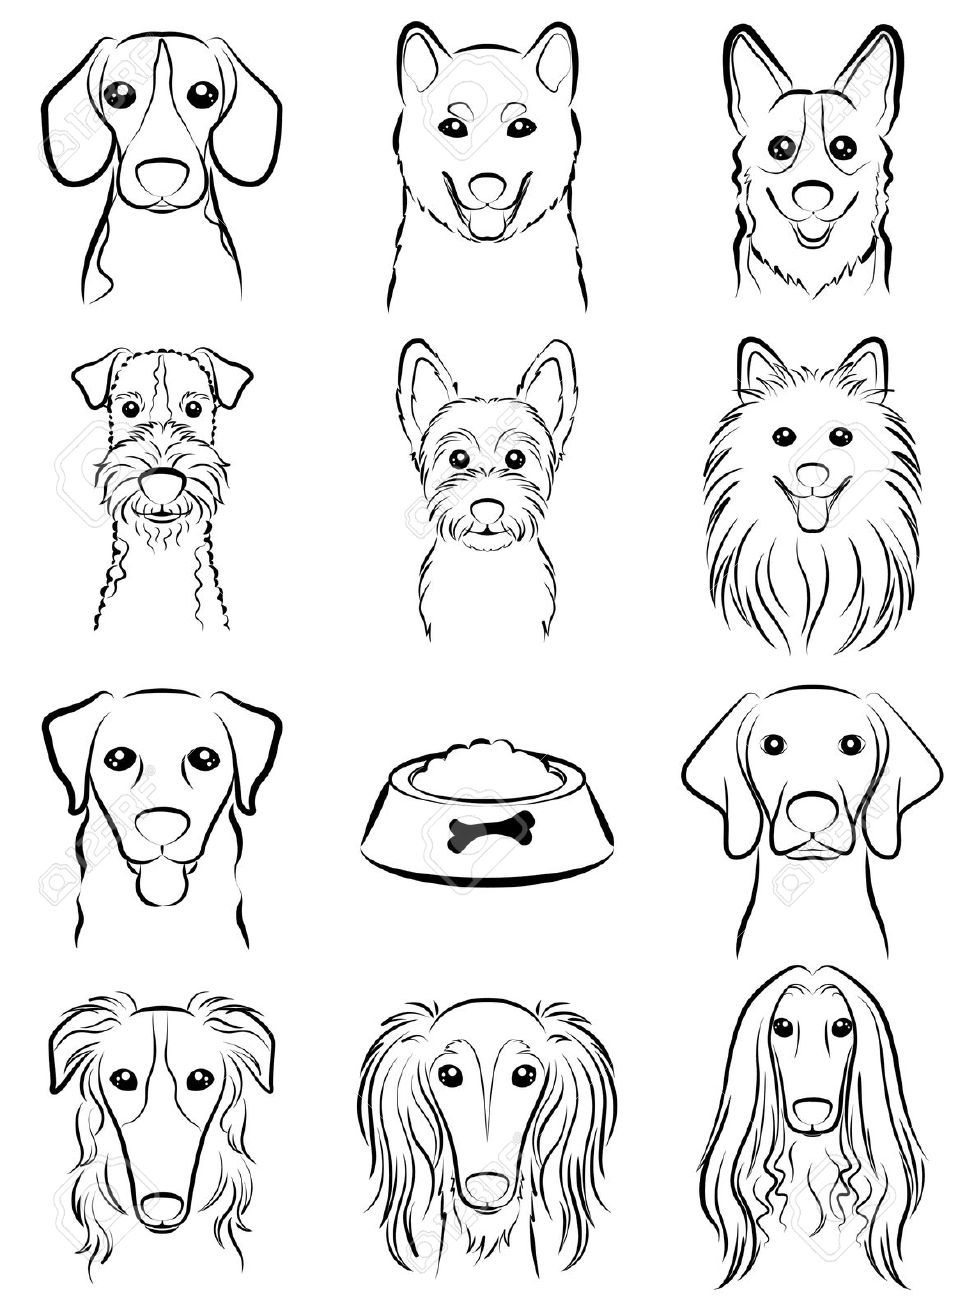 Line Drawing Of Dog : Dog line drawing royalty free cliparts vectors and